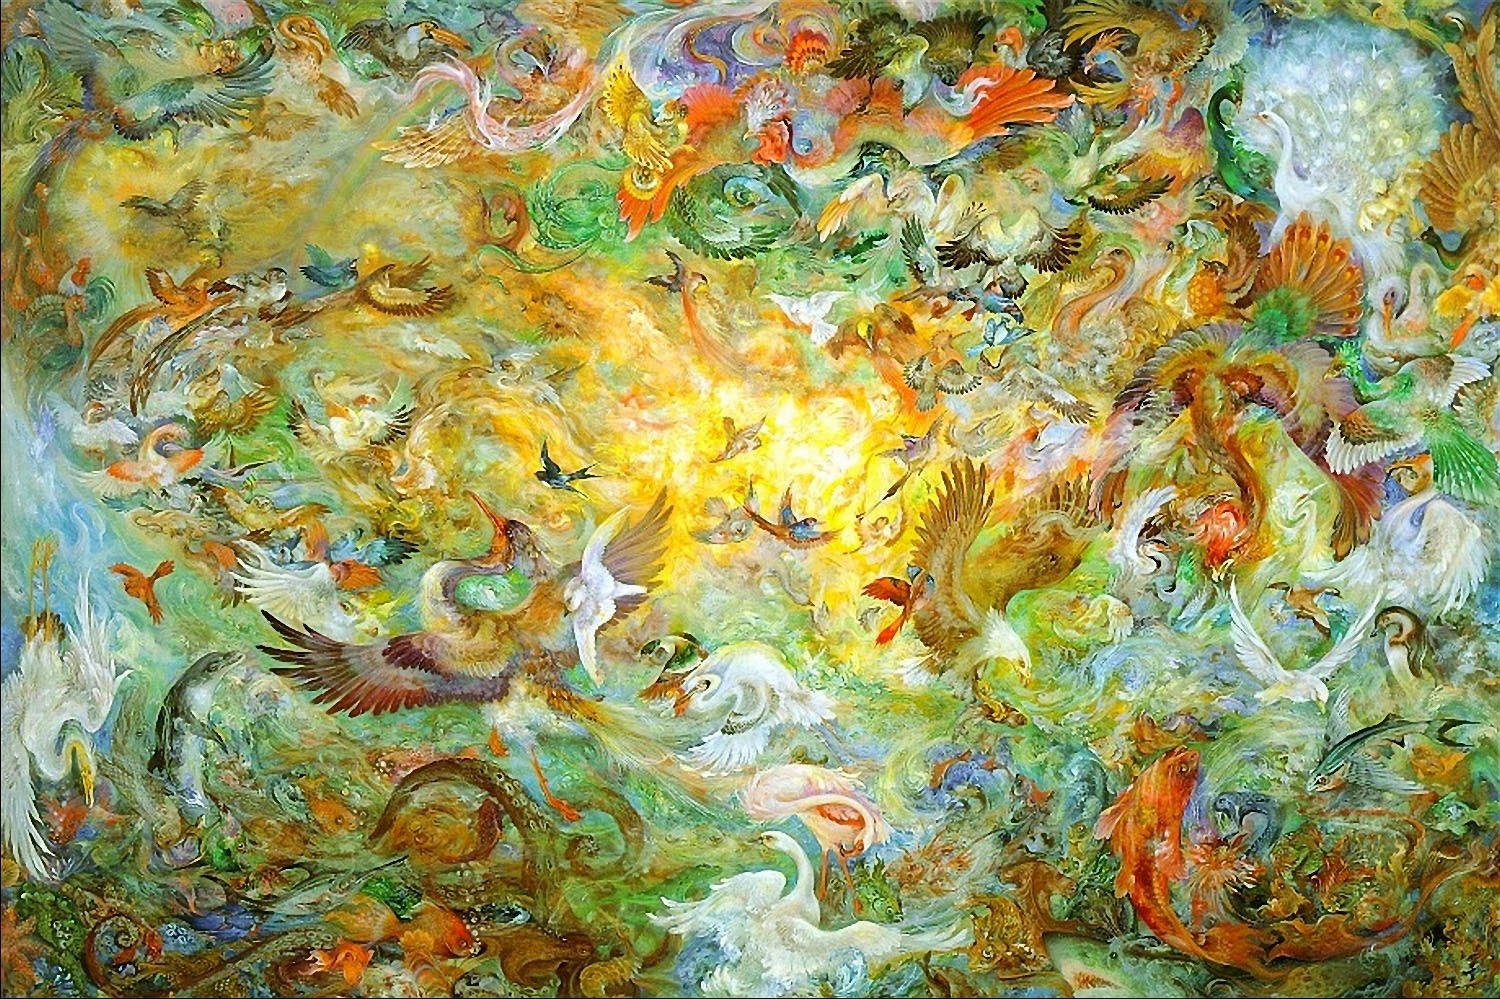 art now and then mahmoud farshchian the fifth day of creation 2007 12 mahmoud farshchian if michelangelo had been persian the sistine ceiling might have looked like this